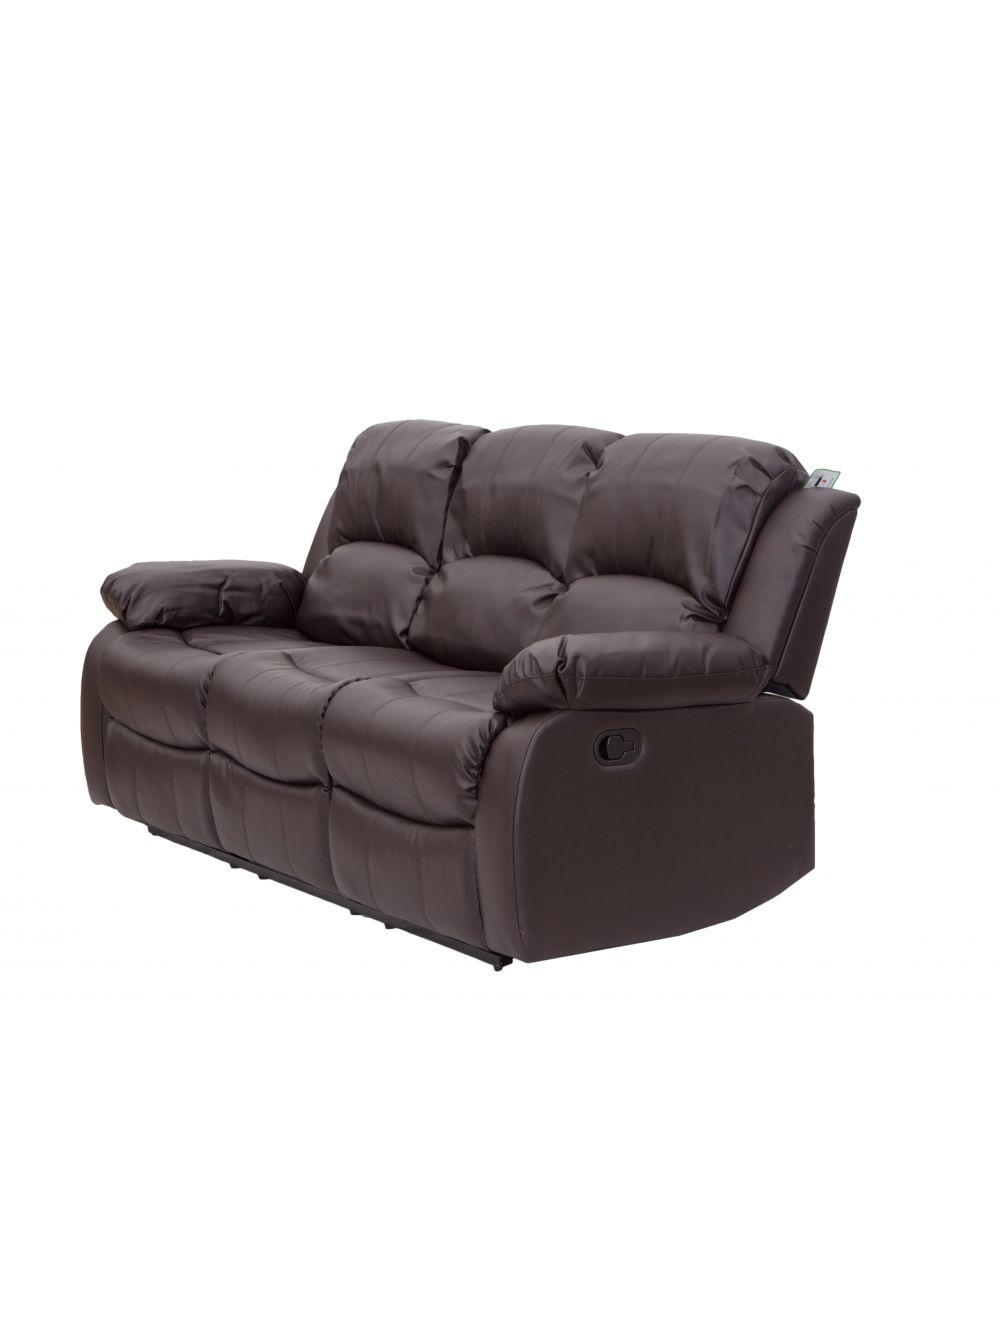 Super Athon Leather 3 2 Seater Recliner Sofa Set Brown Andrewgaddart Wooden Chair Designs For Living Room Andrewgaddartcom